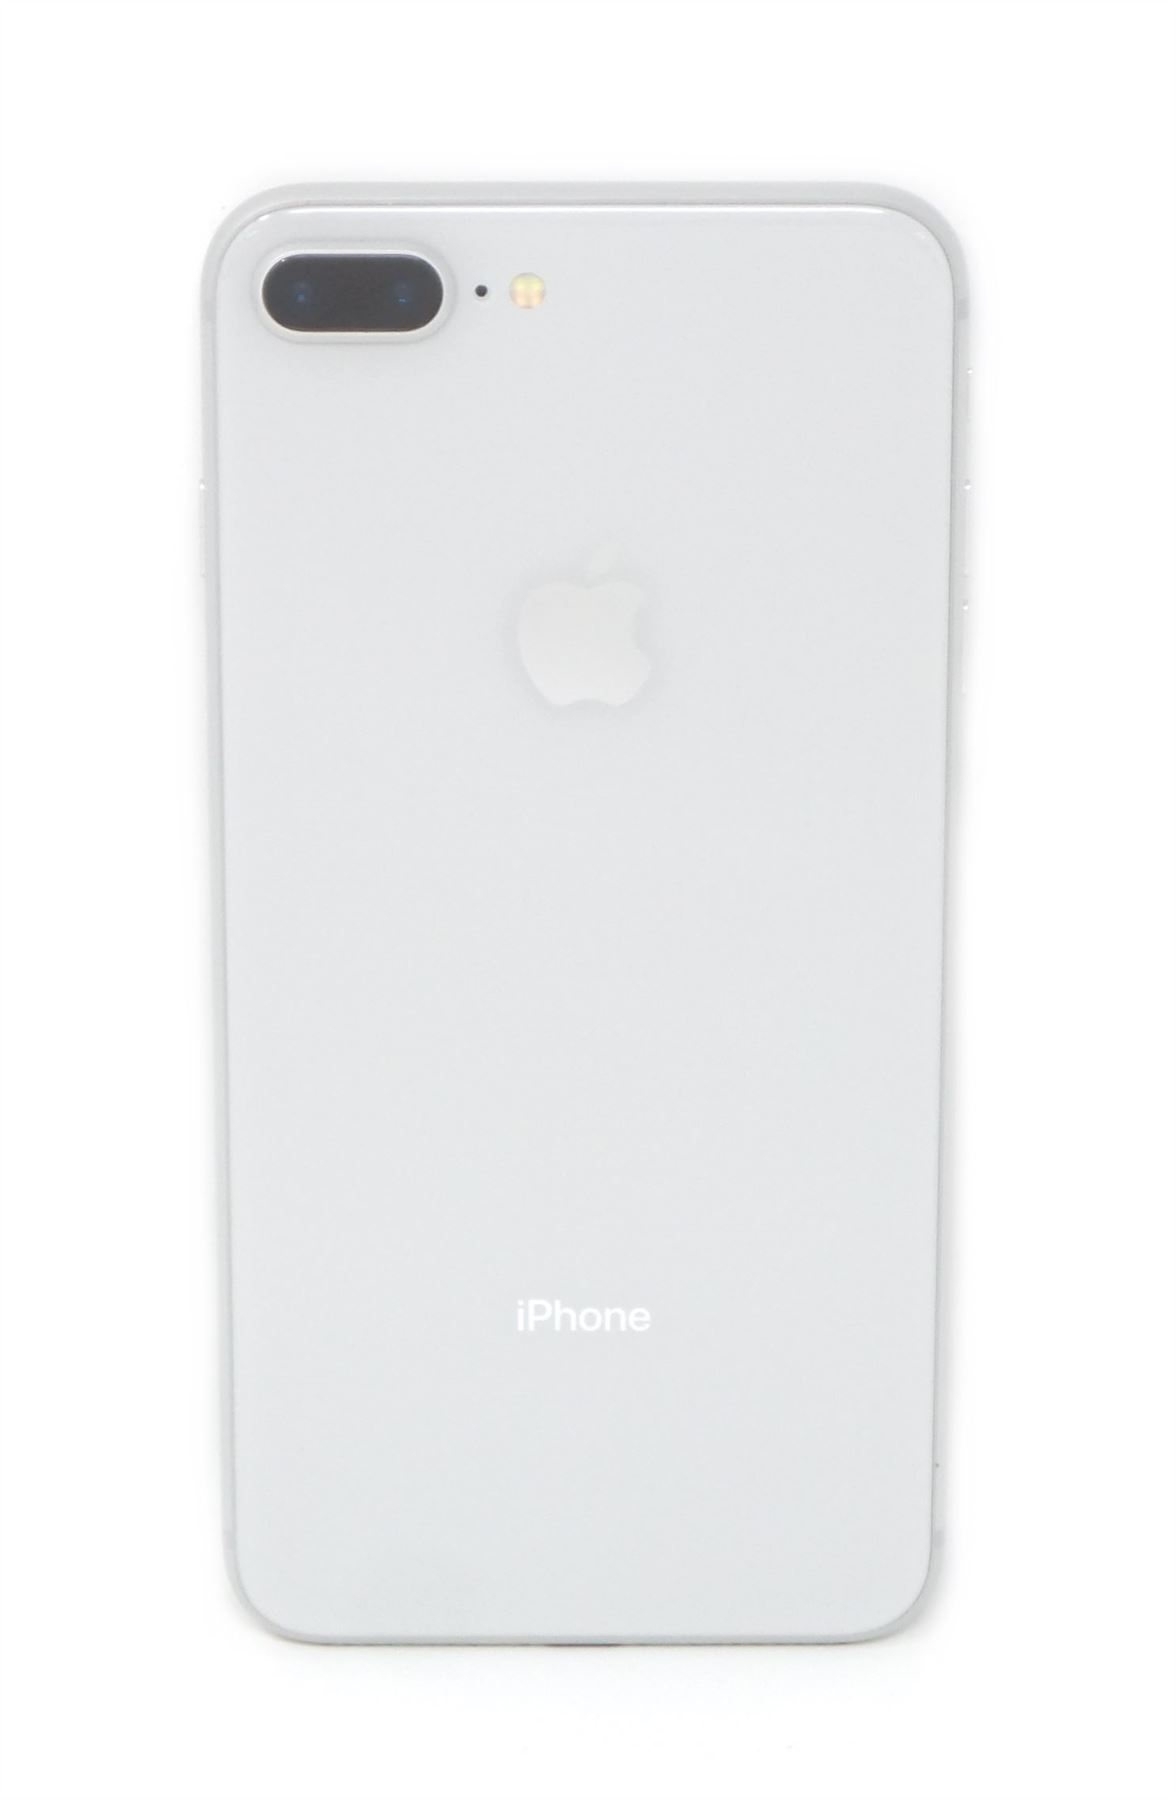 Apple-iPhone-8-Plus-Carrier-Option-AT-amp-T-T-Mobile-Verizon-Unlocked-64-256GB-New thumbnail 23